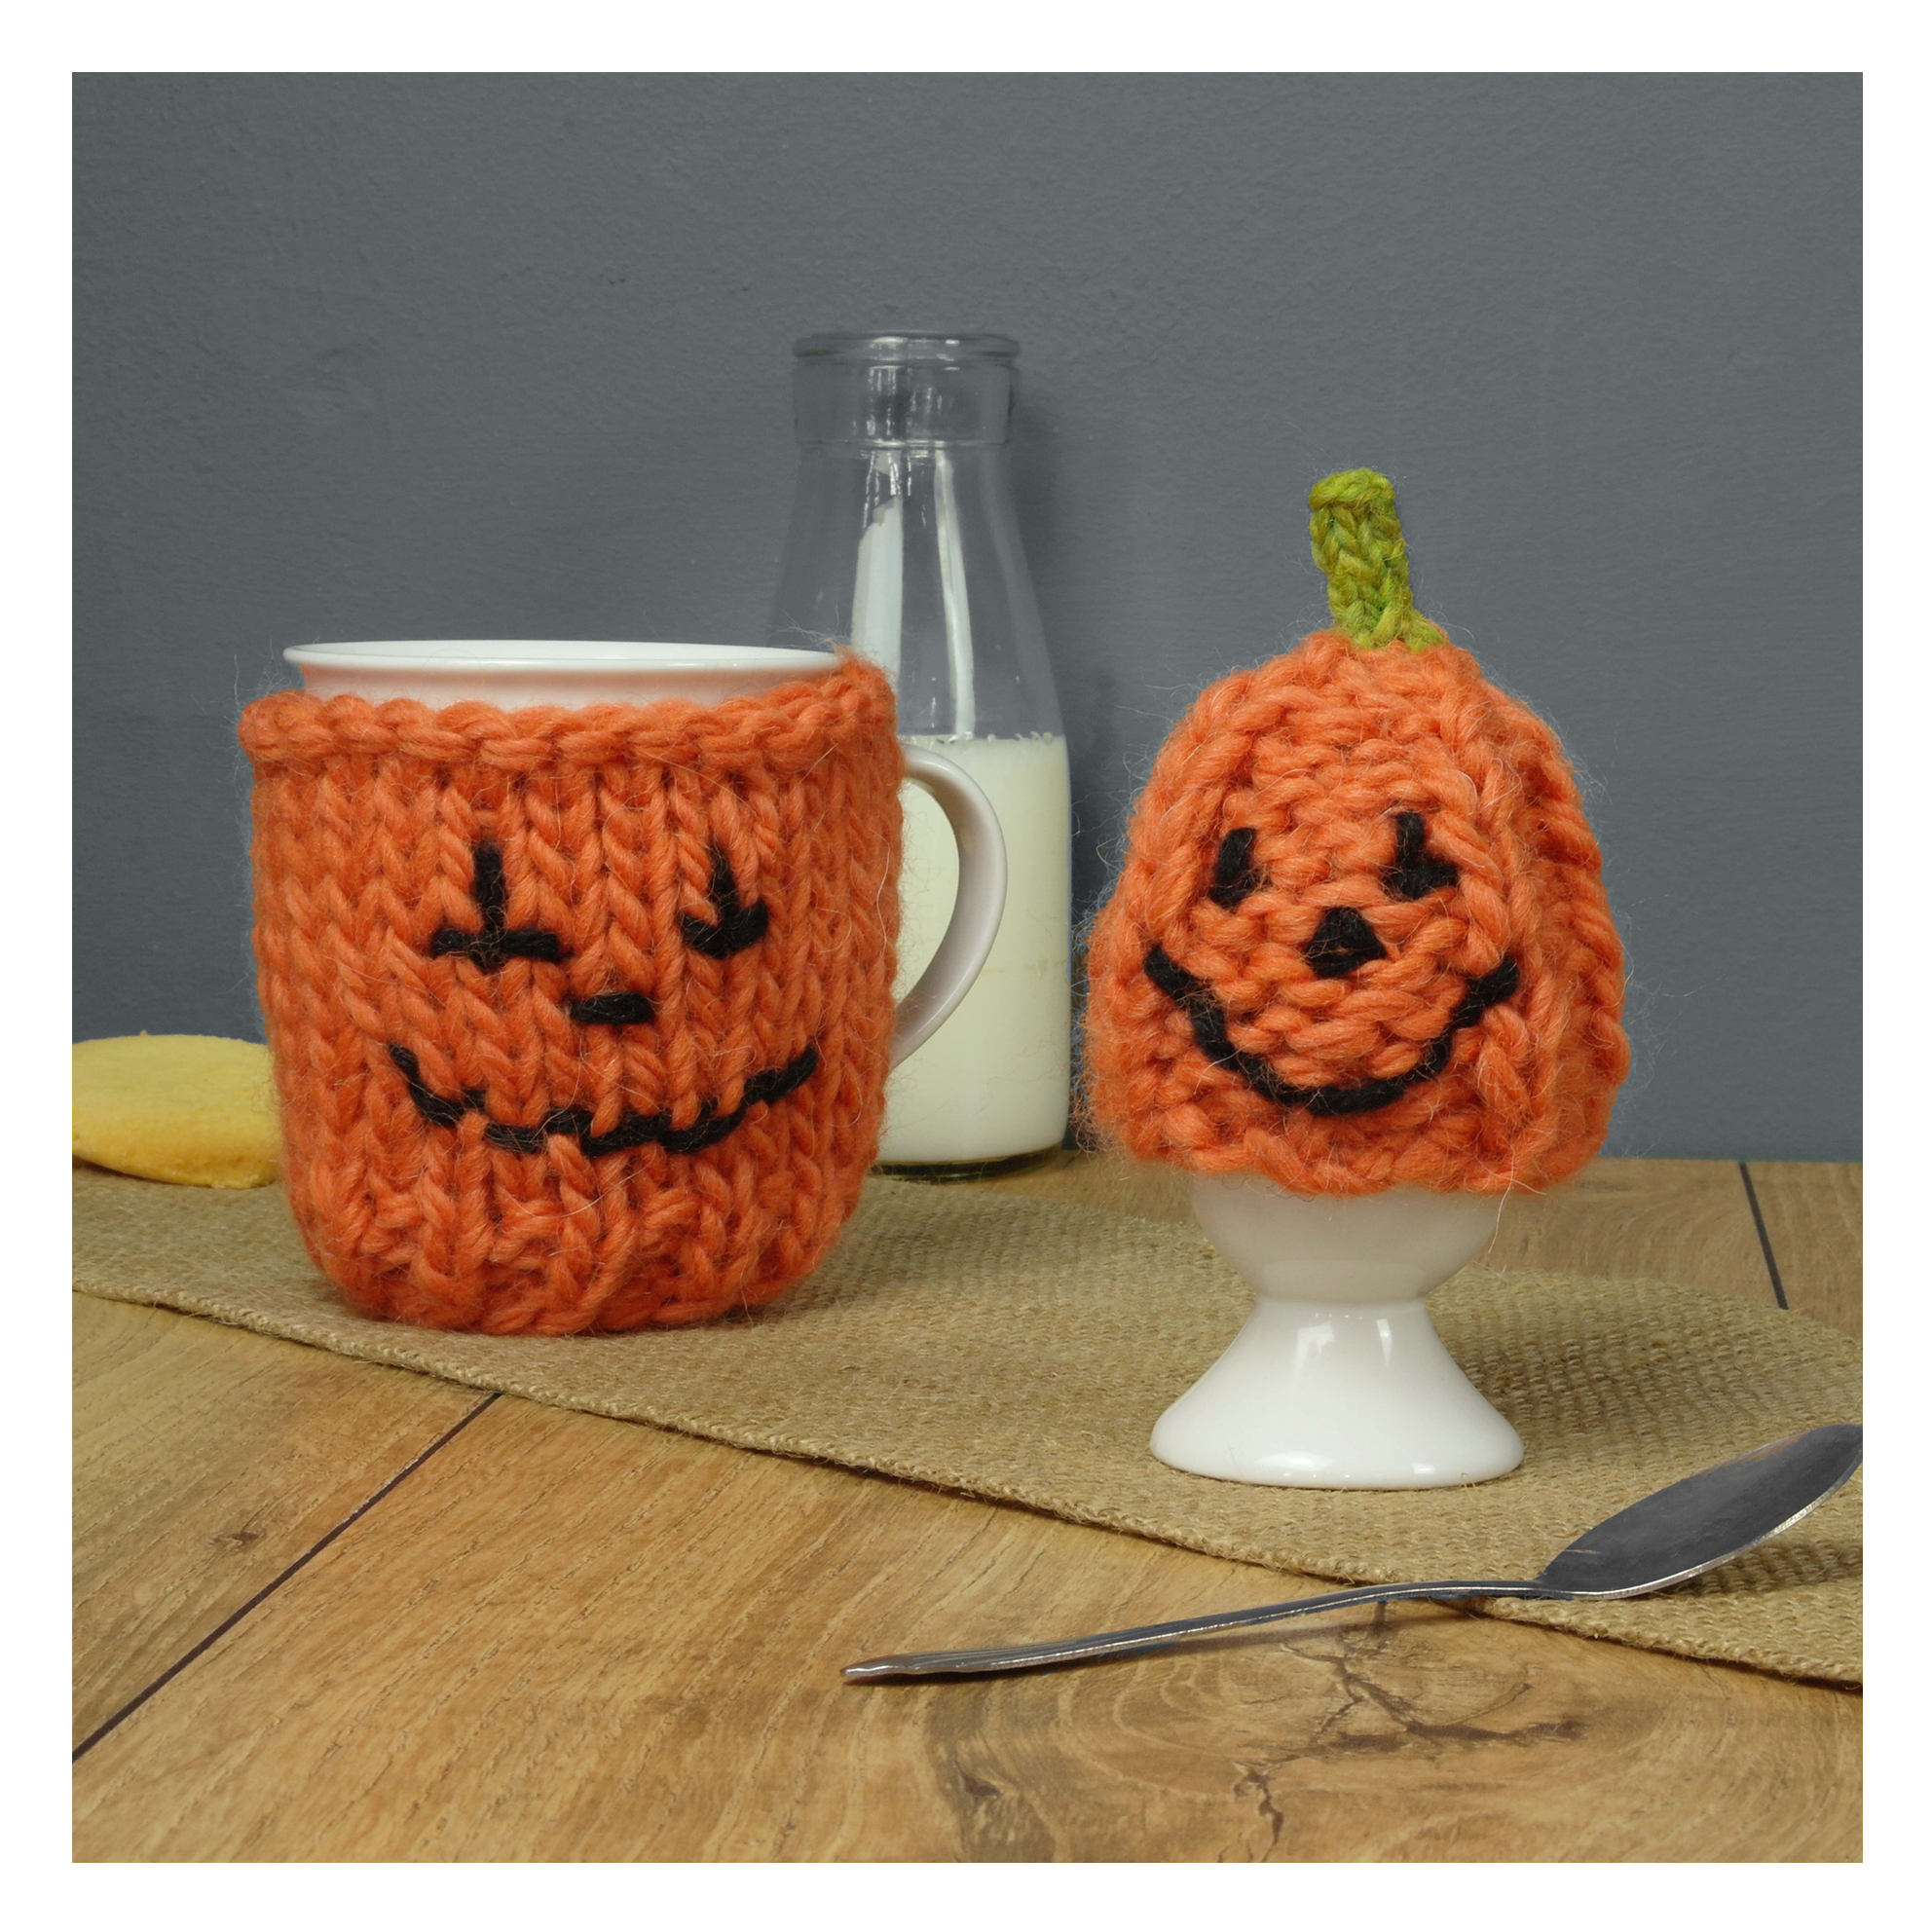 Chi-Chi-Moi-Halloween-Knitted-Pumpkin-Mug-Cosy-and-Egg-Cosy